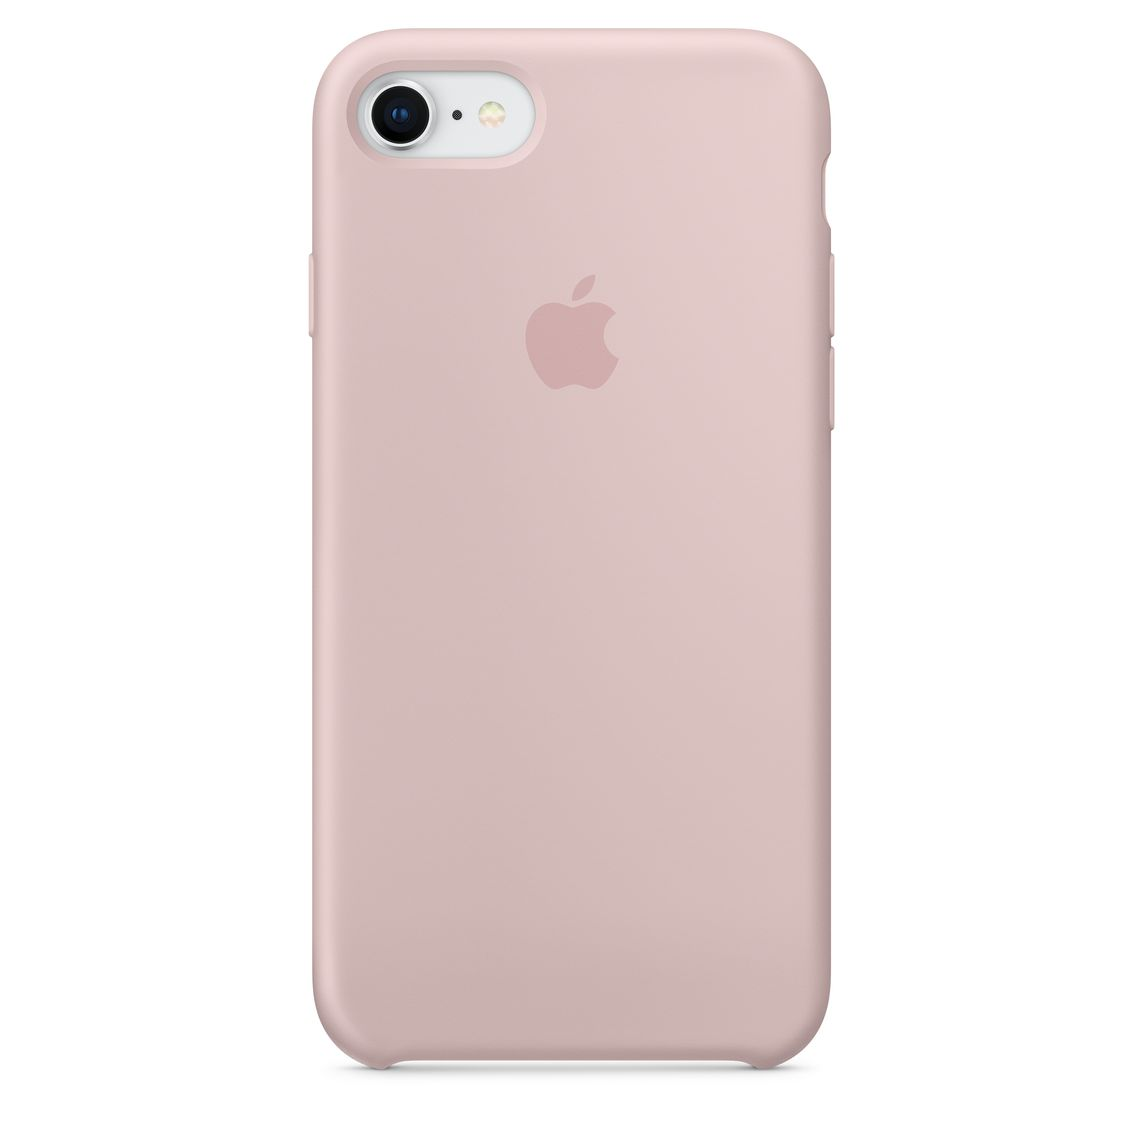 does the coque iphone 6 fit the iphone 7